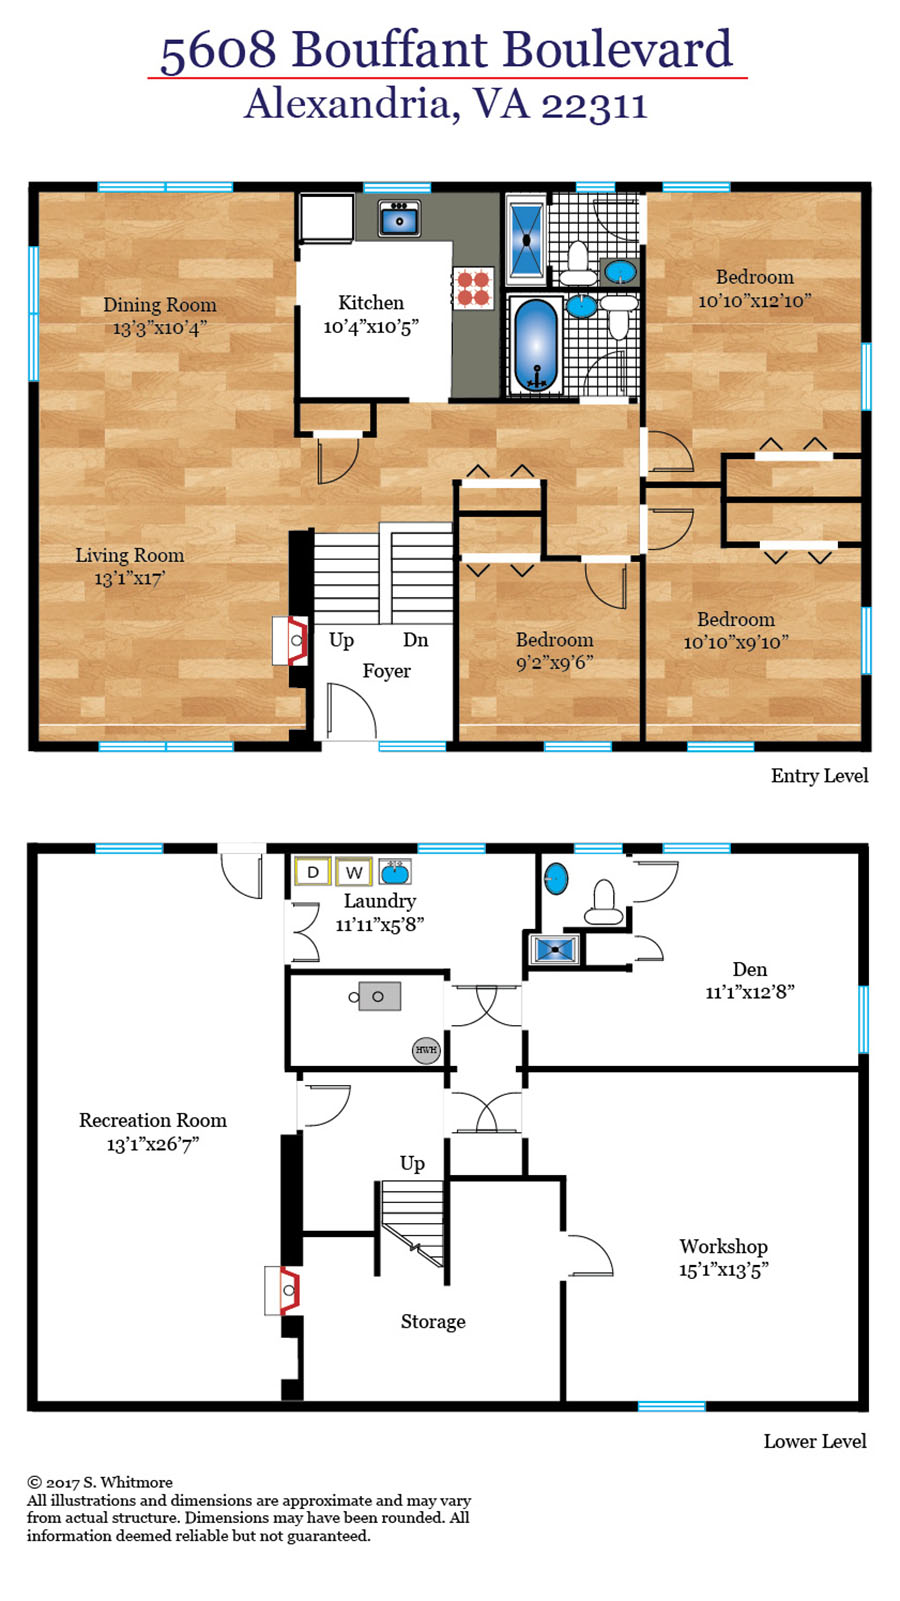 326_floorplan_level-web Bouffant Alexandria Real Estate Listings - Best of Northern Virginia